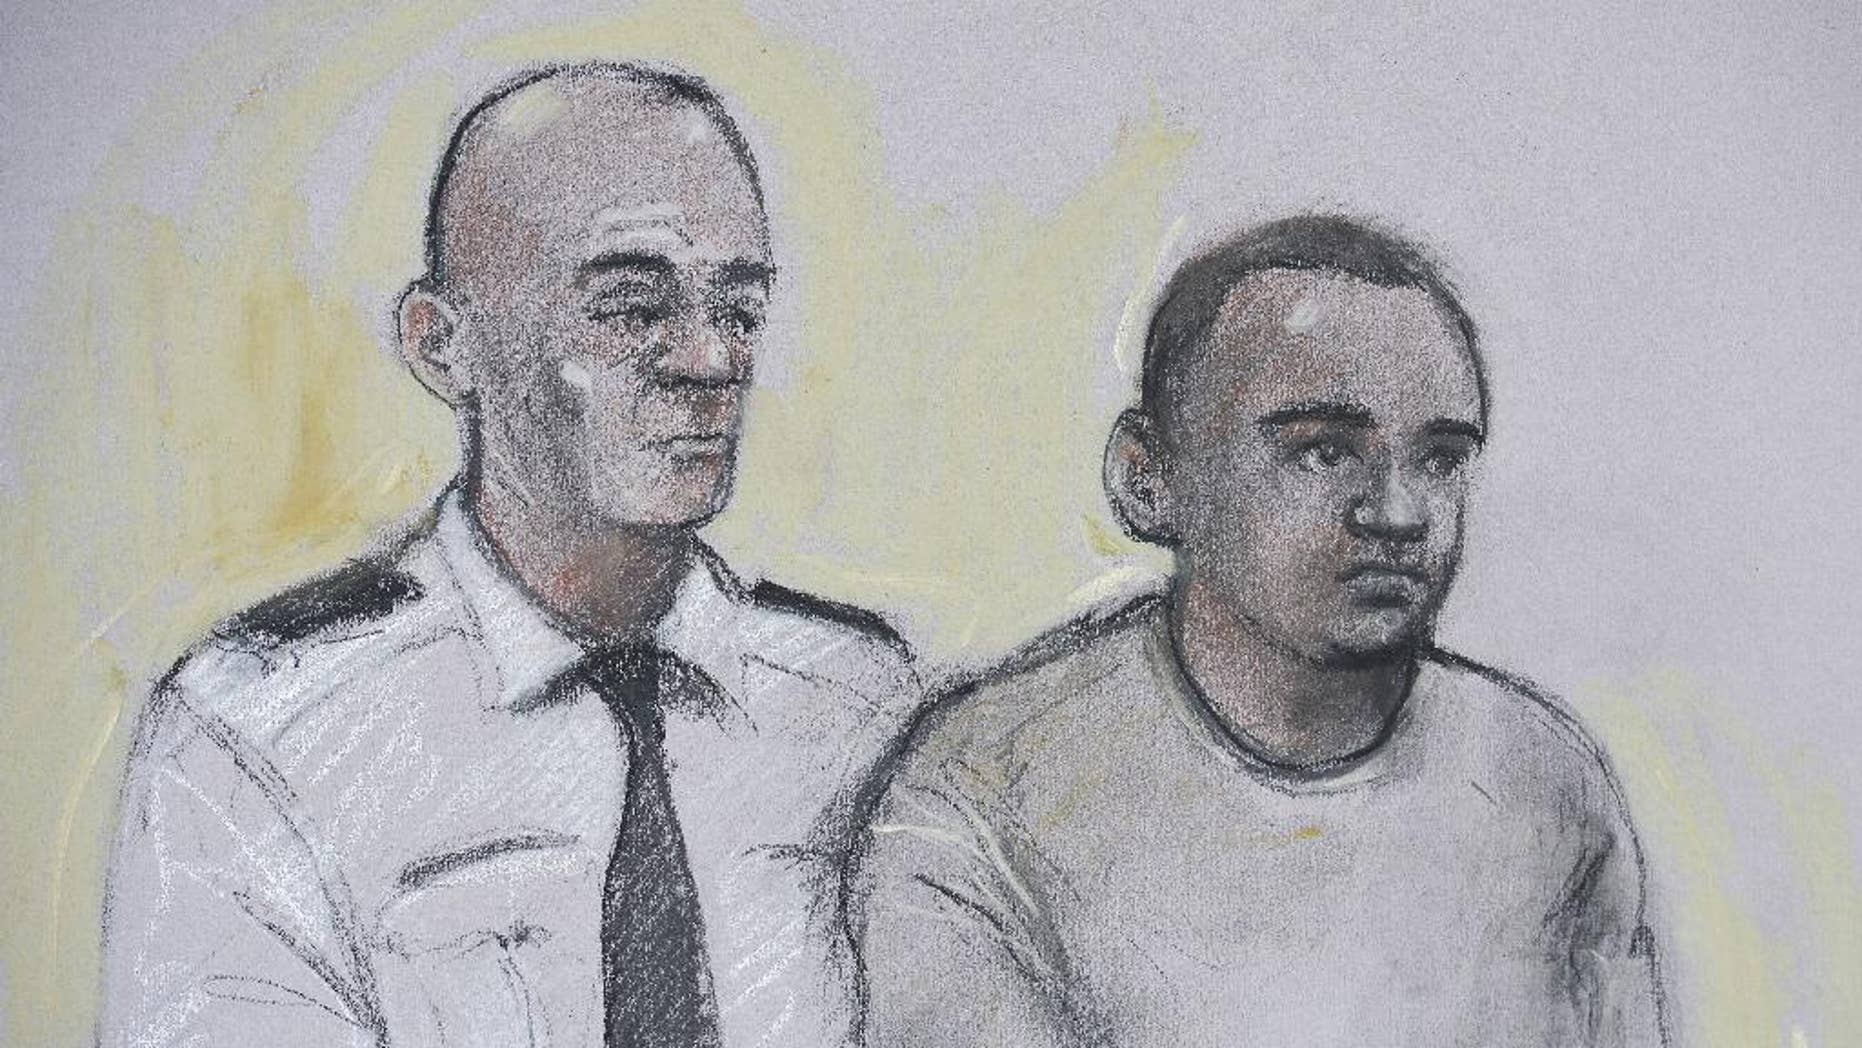 This courtroom sketch by artist Elizabeth Cook shows Zakaria Bulhan, right, appearing at Westminster Magistrates Court in London, Saturday, Aug. 6, 2016. The 19-year-old Somali-Norwegian man is accused of carrying out a stabbing rampage in London's Russell Square and was remanded into custody Saturday after a court appearance in the British capital. Zakaria Bulhan of London is accused of slaying 64-year-old American Darlene Horton, a retired teacher. Bulhan also faces five counts of attempted murder in the attack on two Australians, an Israeli, an American and a British citizen. (PA via AP)